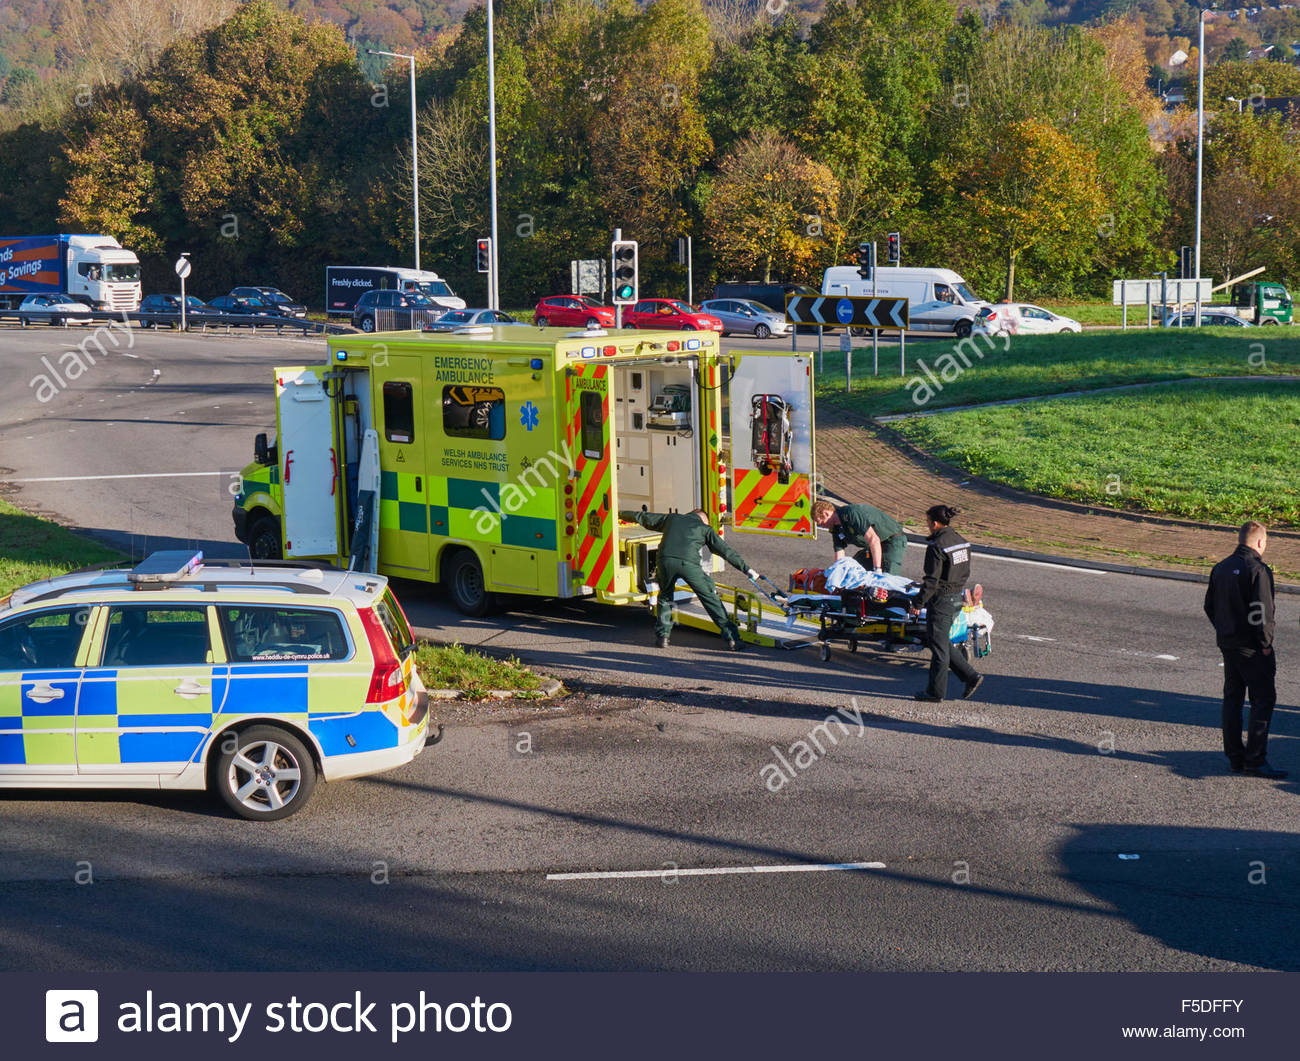 A wales ambulance and police car at the scene of a road accident on ...